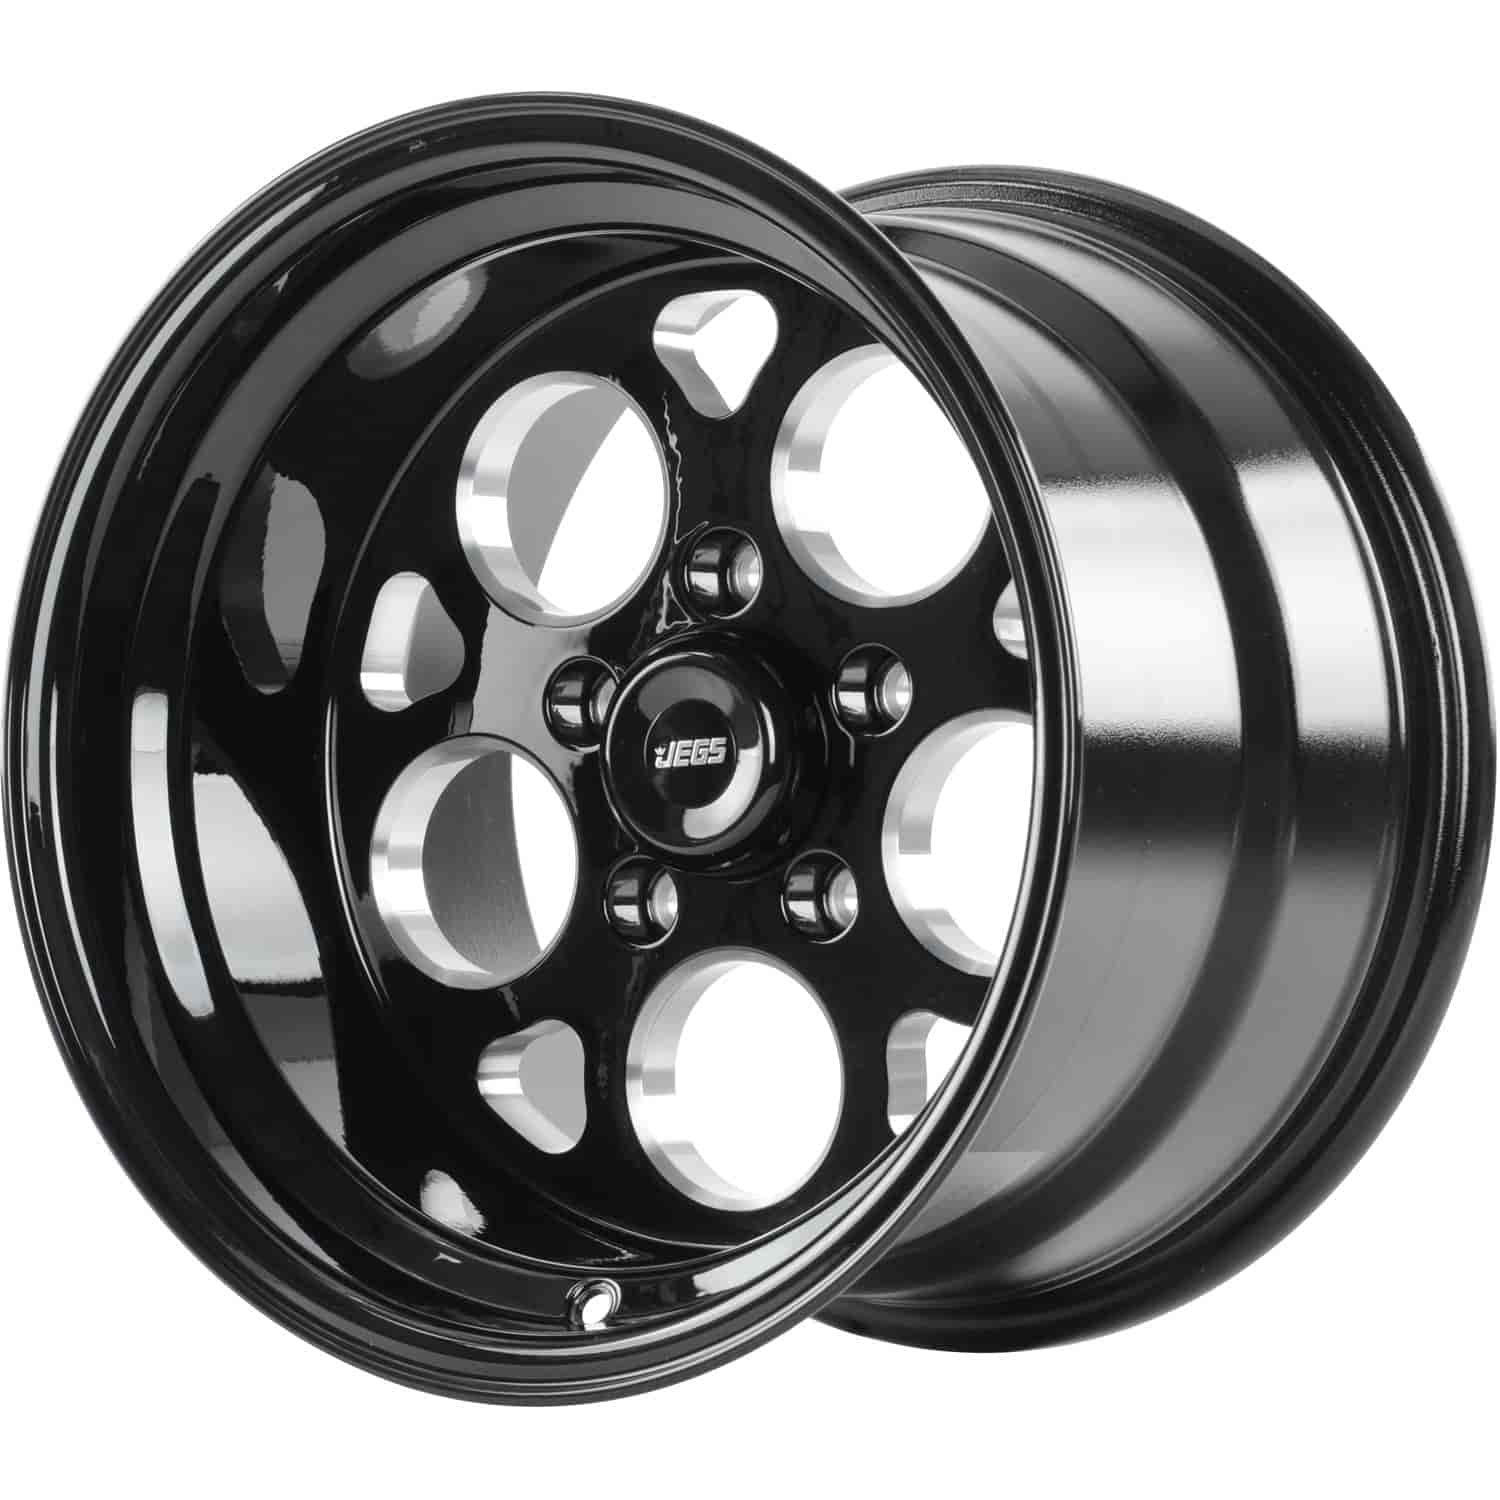 Jegs racing wheels